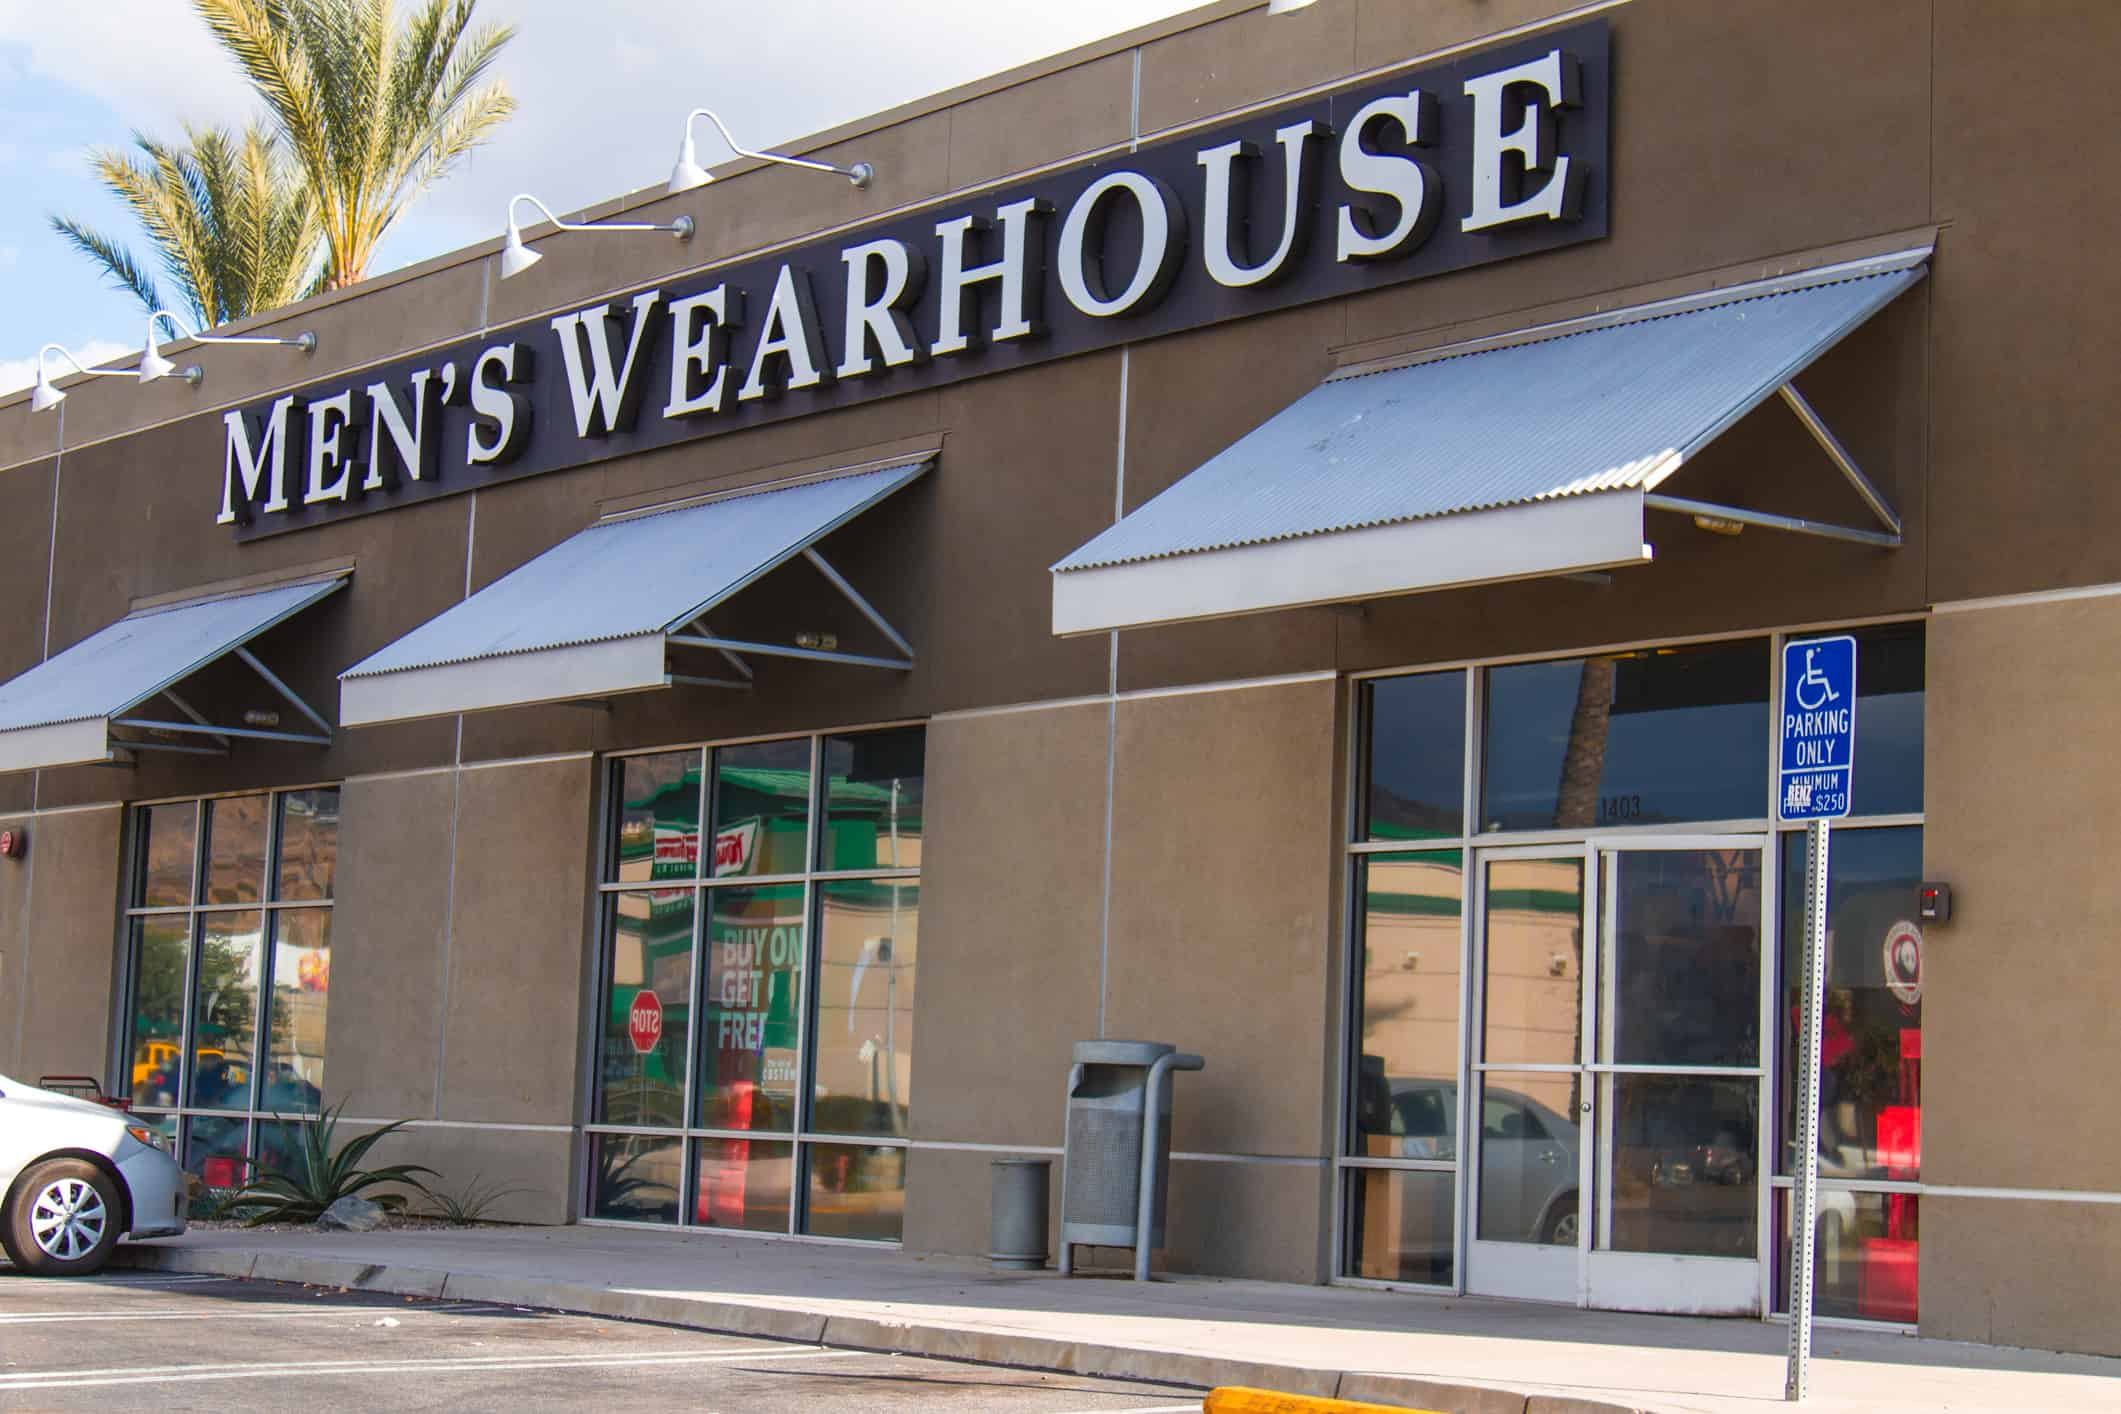 Men's Wearhouse,